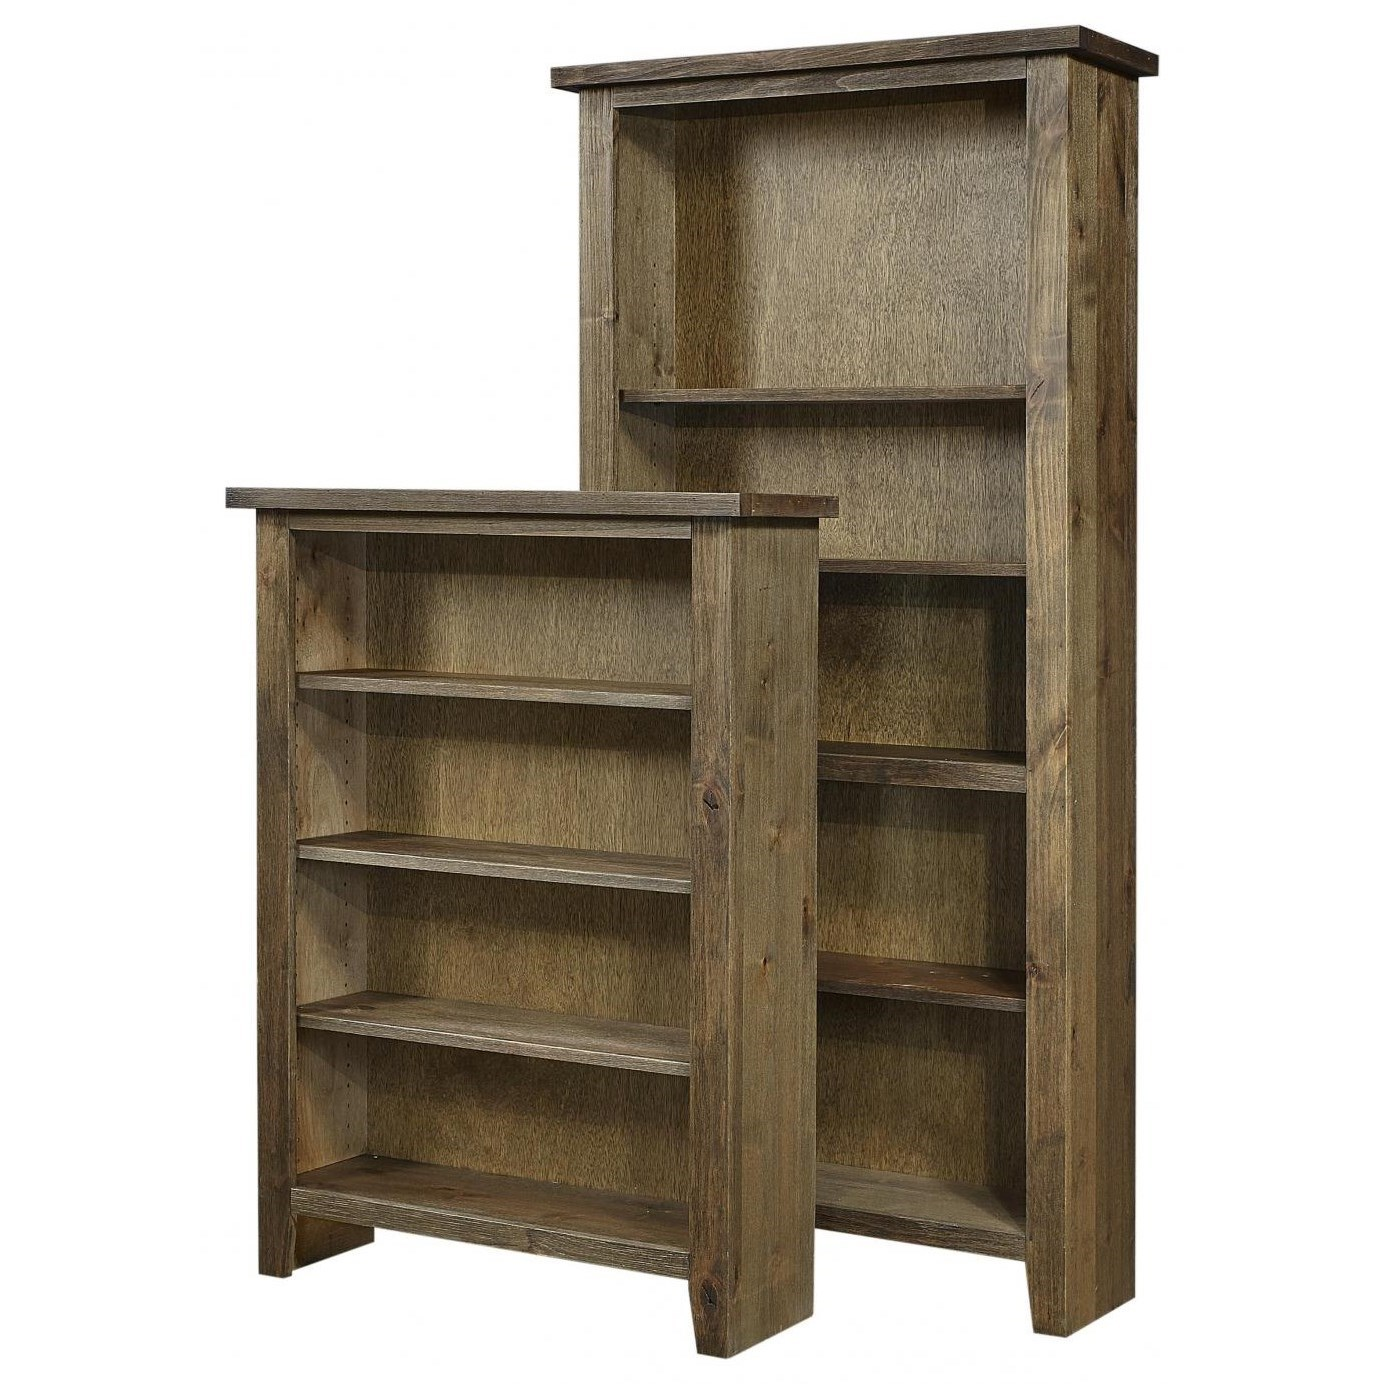 """Alder Grove Bookcase 74"""" H with 4 Shelves by Aspenhome at Walker's Furniture"""